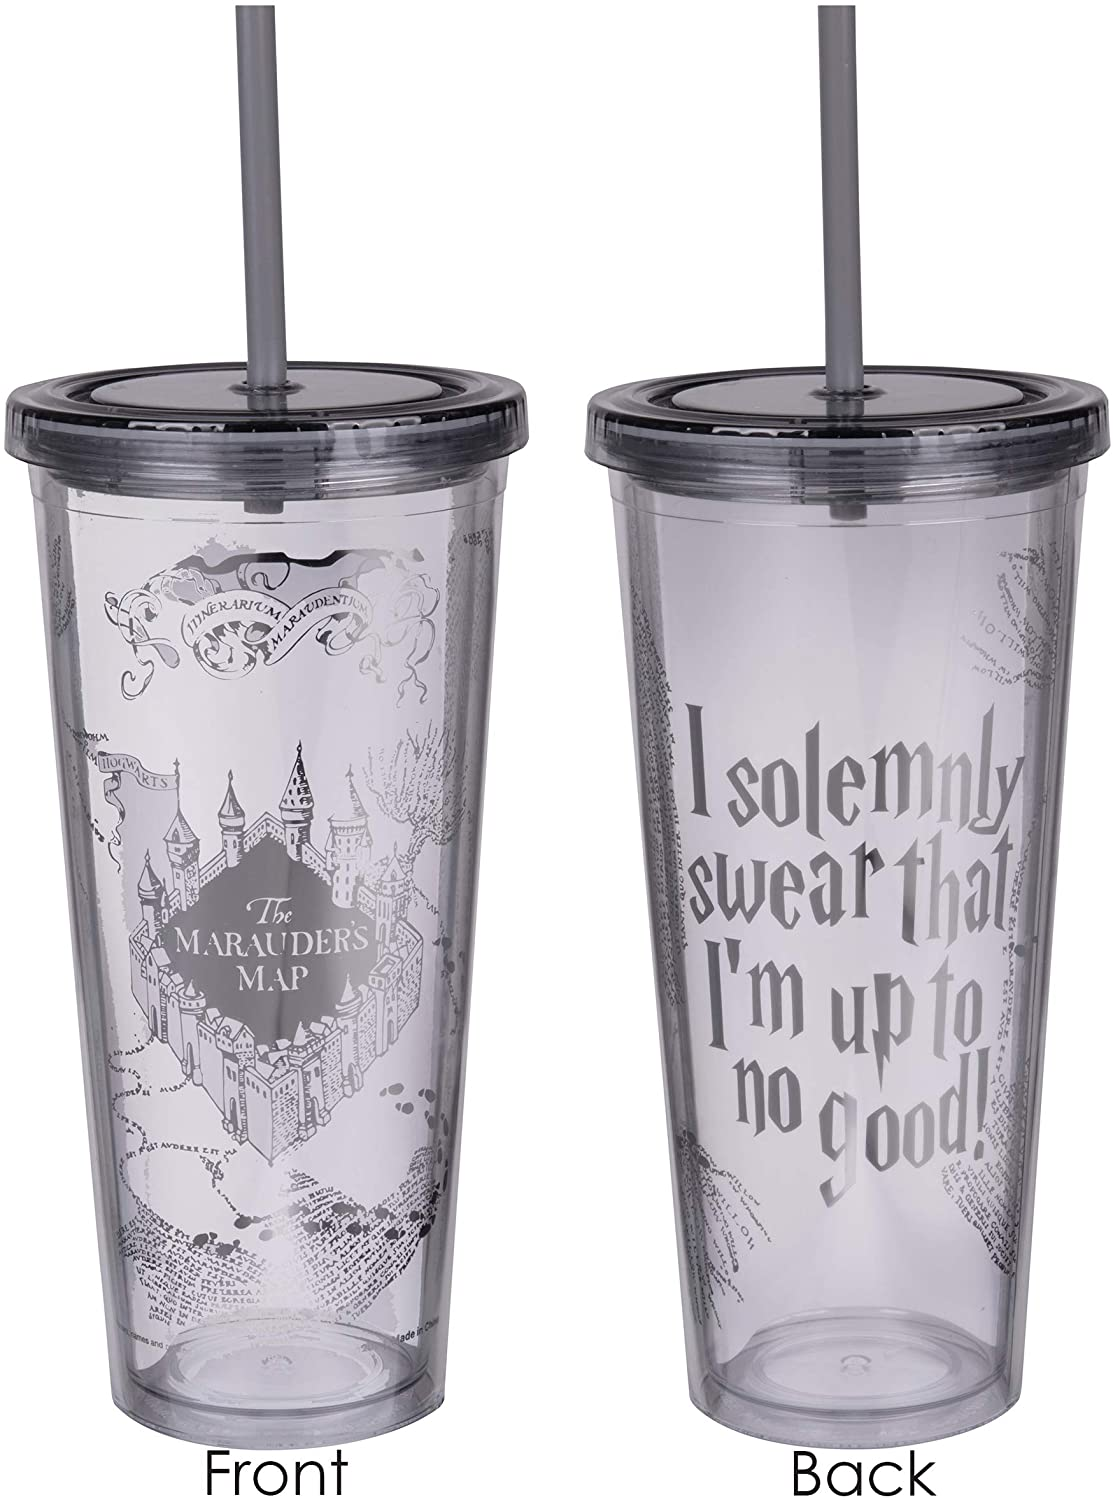 Harry Potter Marauder's Map Travel Cup with Straw - I Solemnly Swear That I Am Up to No Good - Acrylic Tumbler with Silver Design - 22 oz